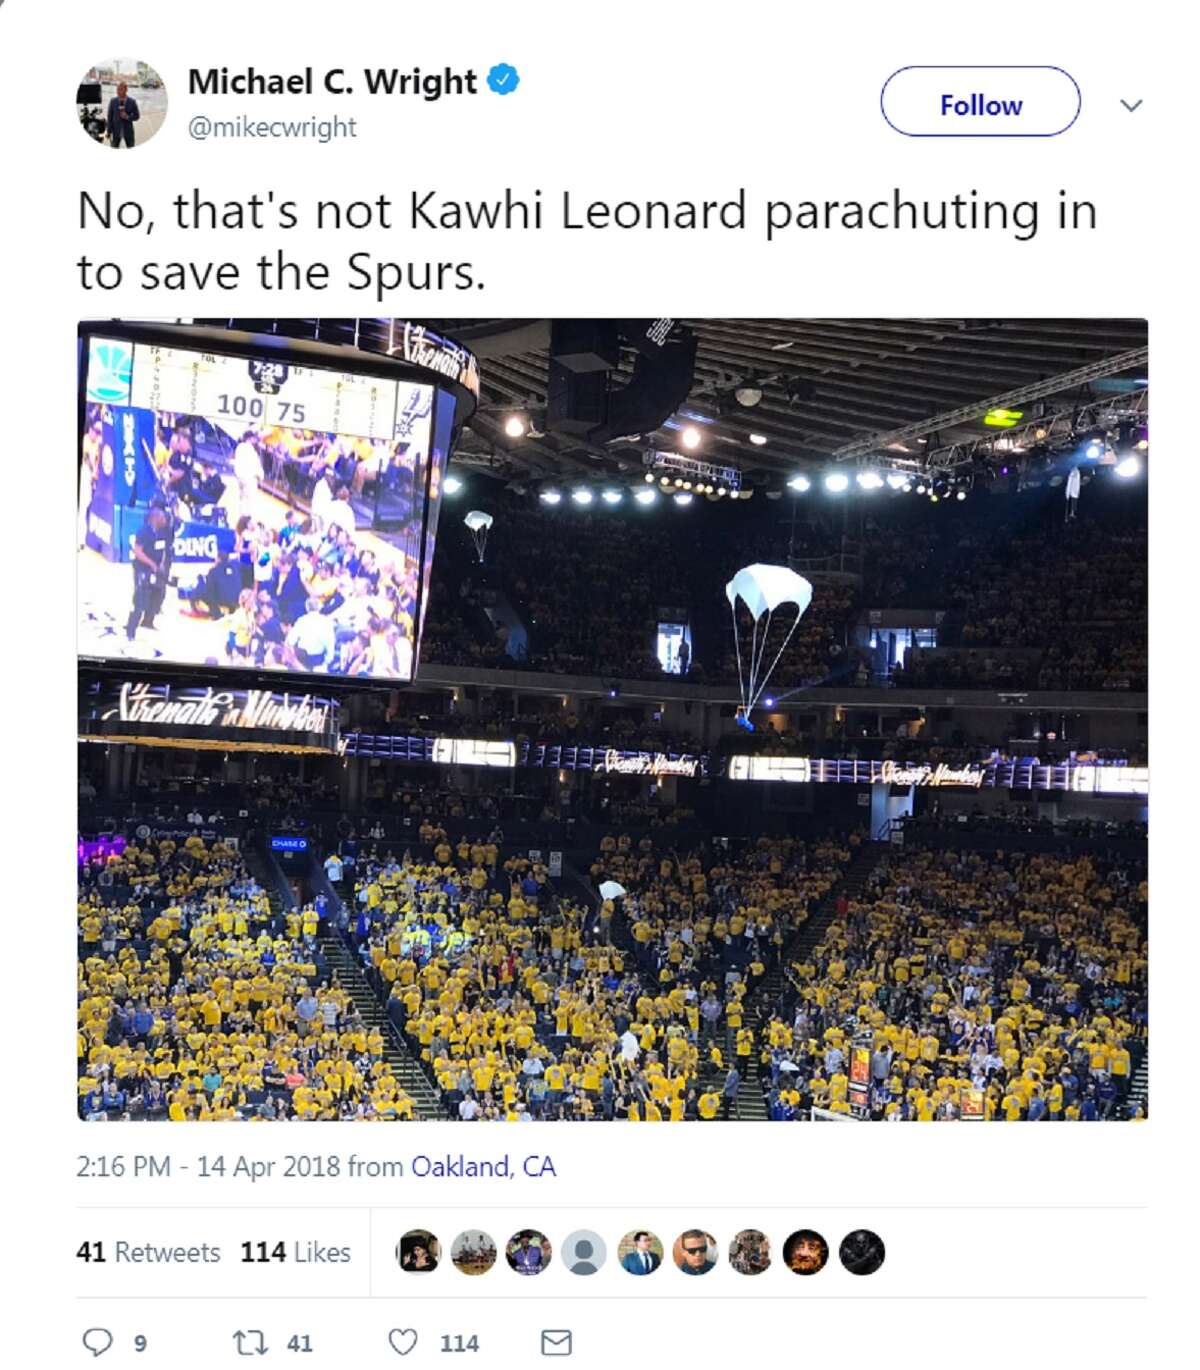 Kawhi Leonard's strange absence from Game 1 of the Spurs playoff series against the Golden State Warriors drew a flood of criticism on social media.